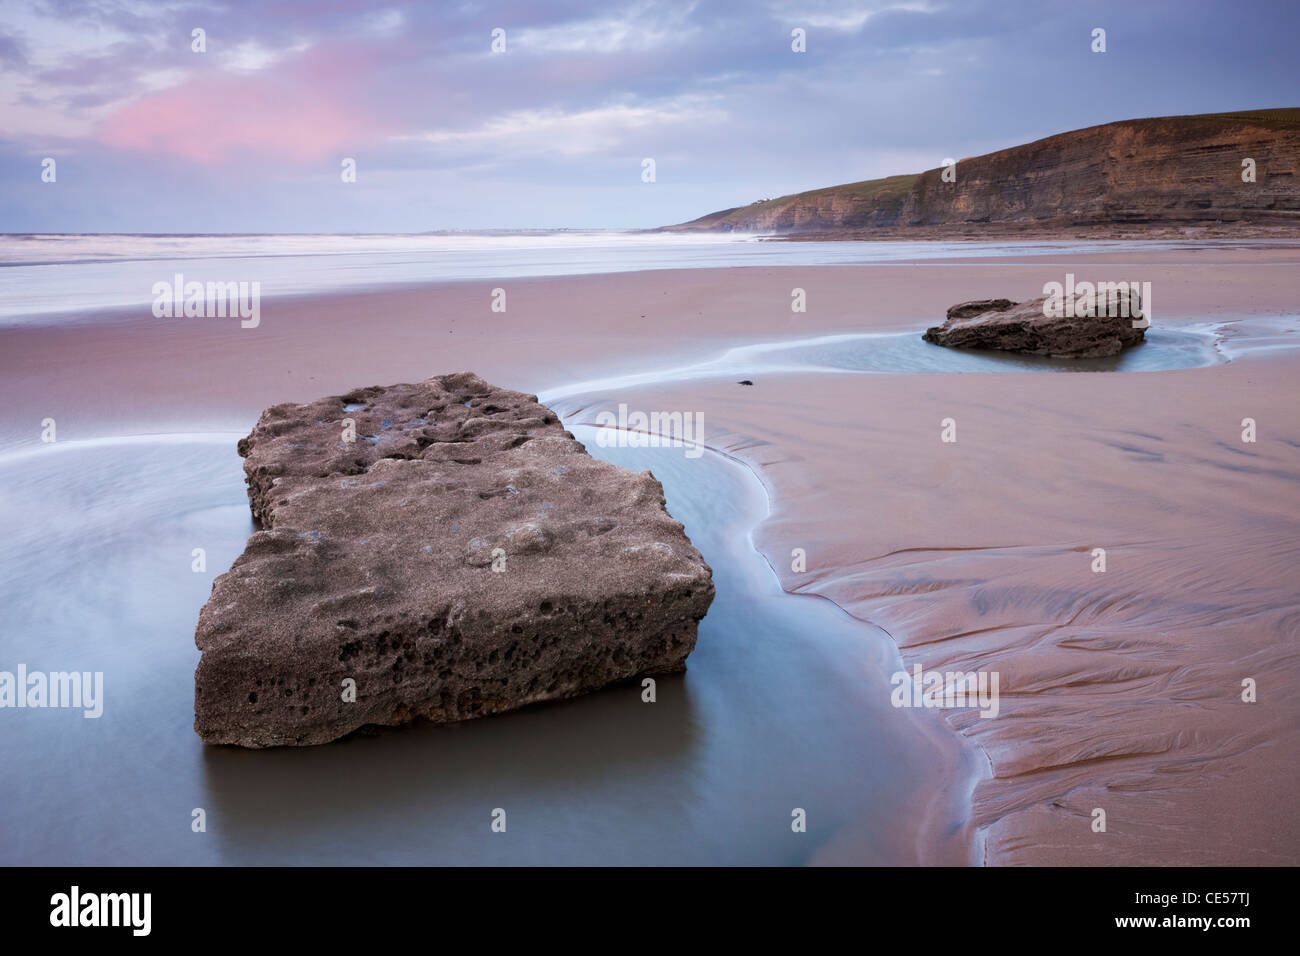 Rockpools on the sandy beach at Dunraven Bay, Southerndown, Glamorgan, Wales, UK. Winter (December) 2011. - Stock Image